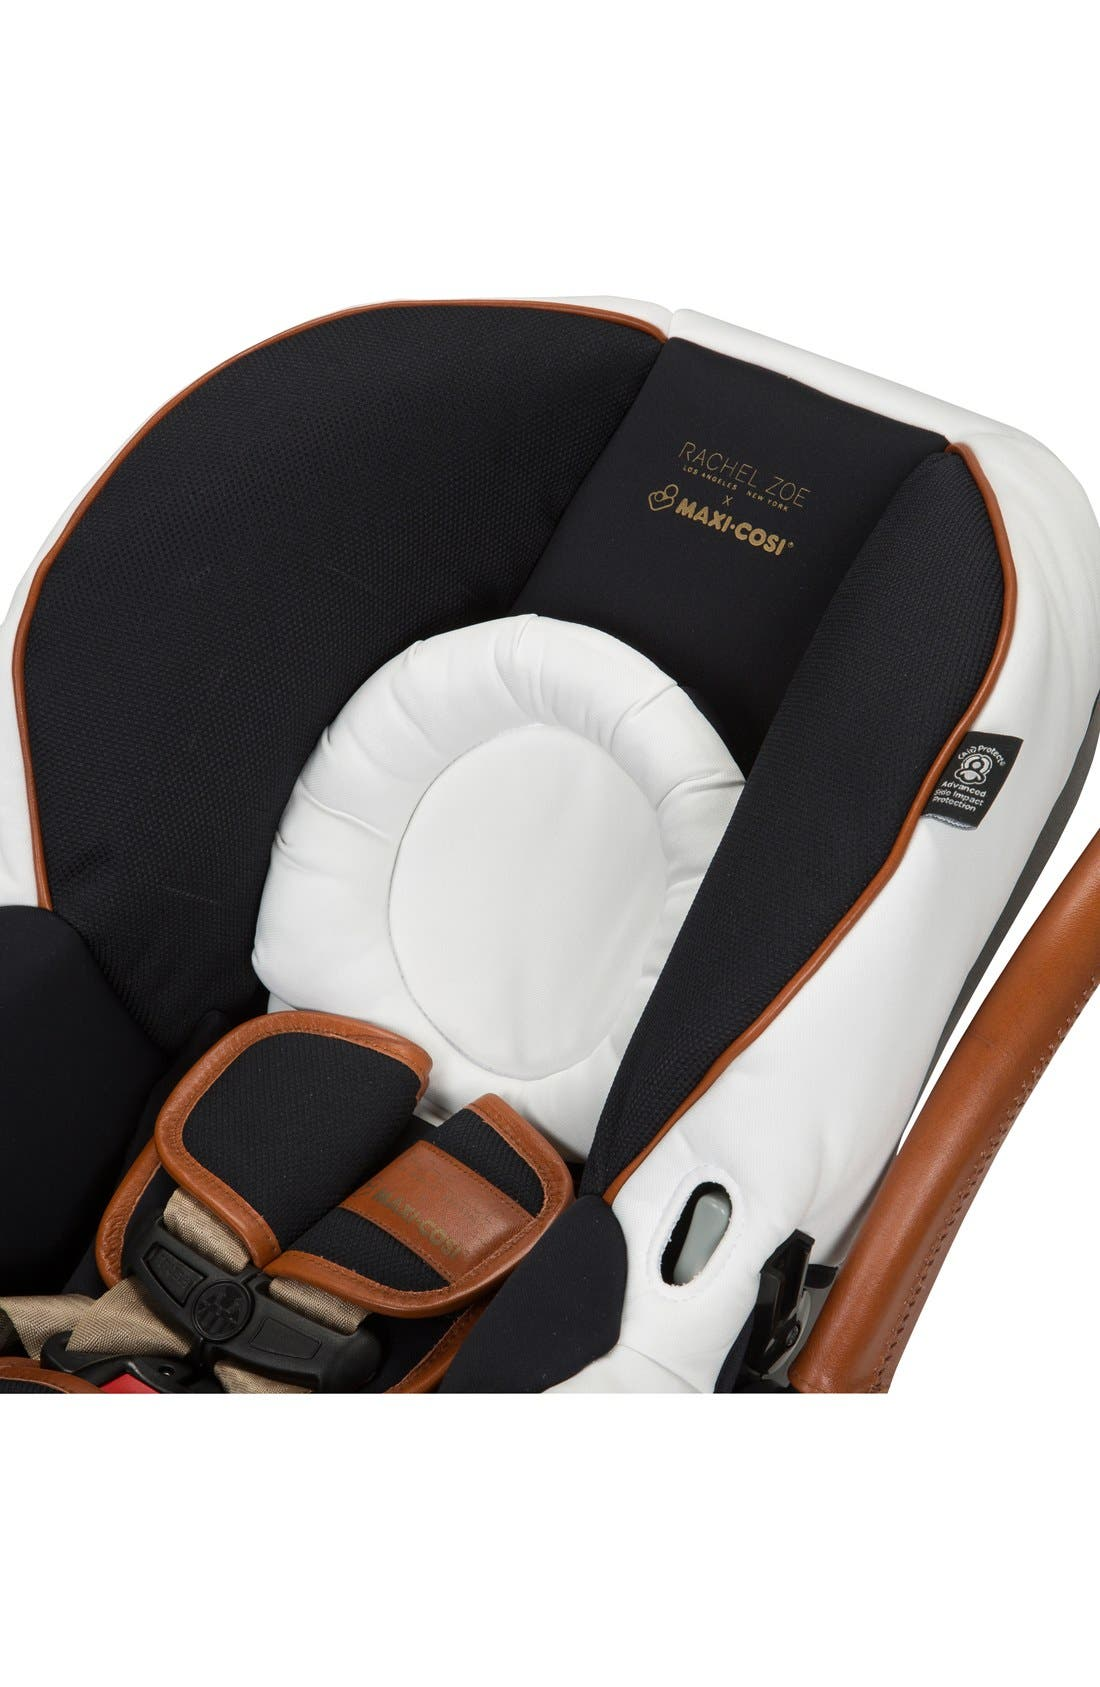 x Rachel Zoe Mico Max 30 - Special Edition Infant Car Seat,                             Alternate thumbnail 4, color,                             Black/ White